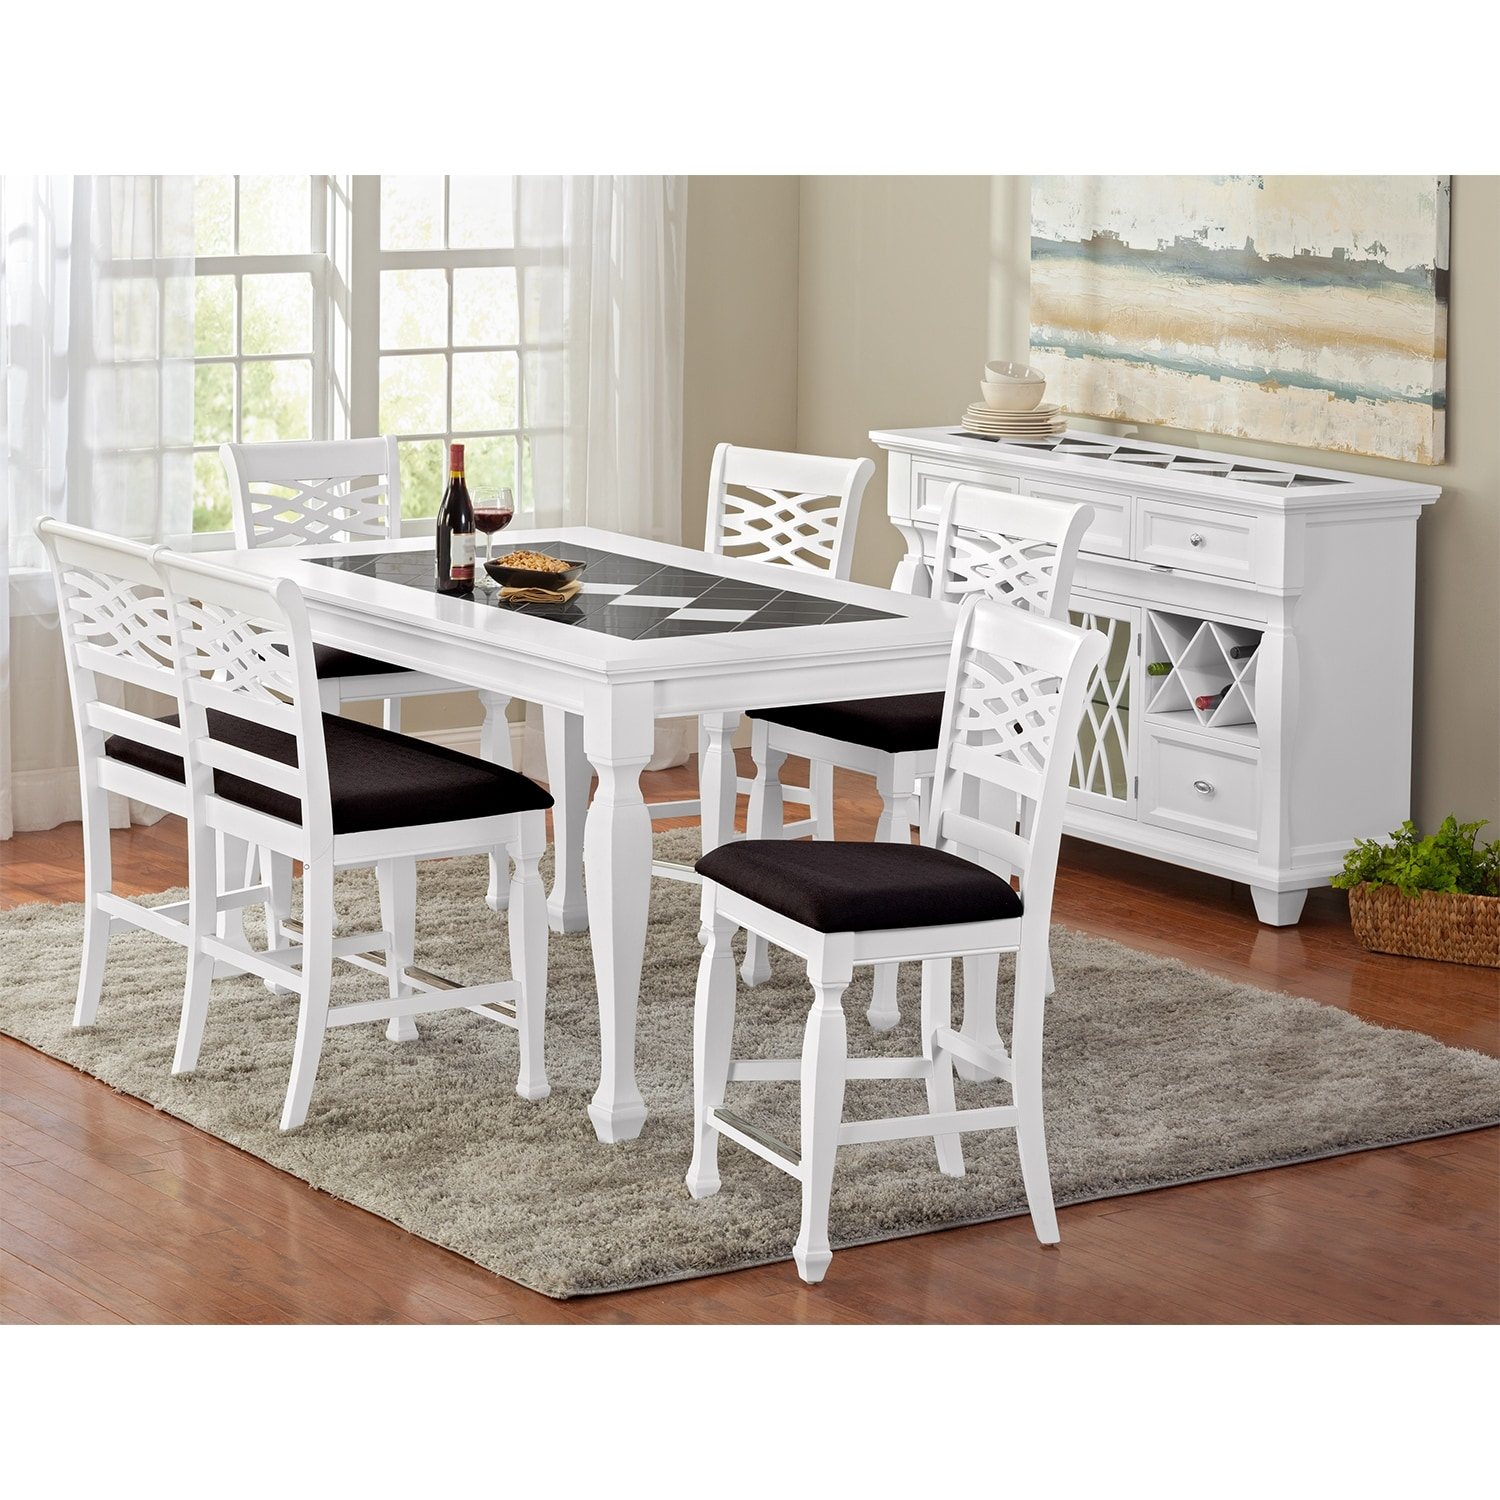 HD wallpapers nova espresso 3 piece kitchen counter height dining set